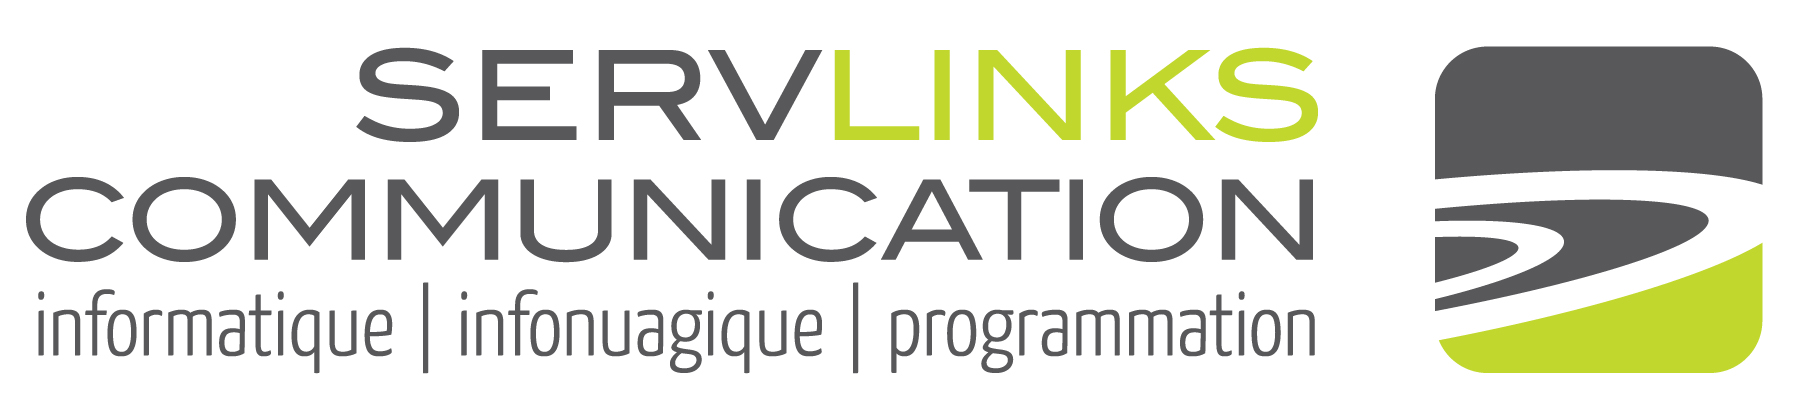 Servlinks Communication